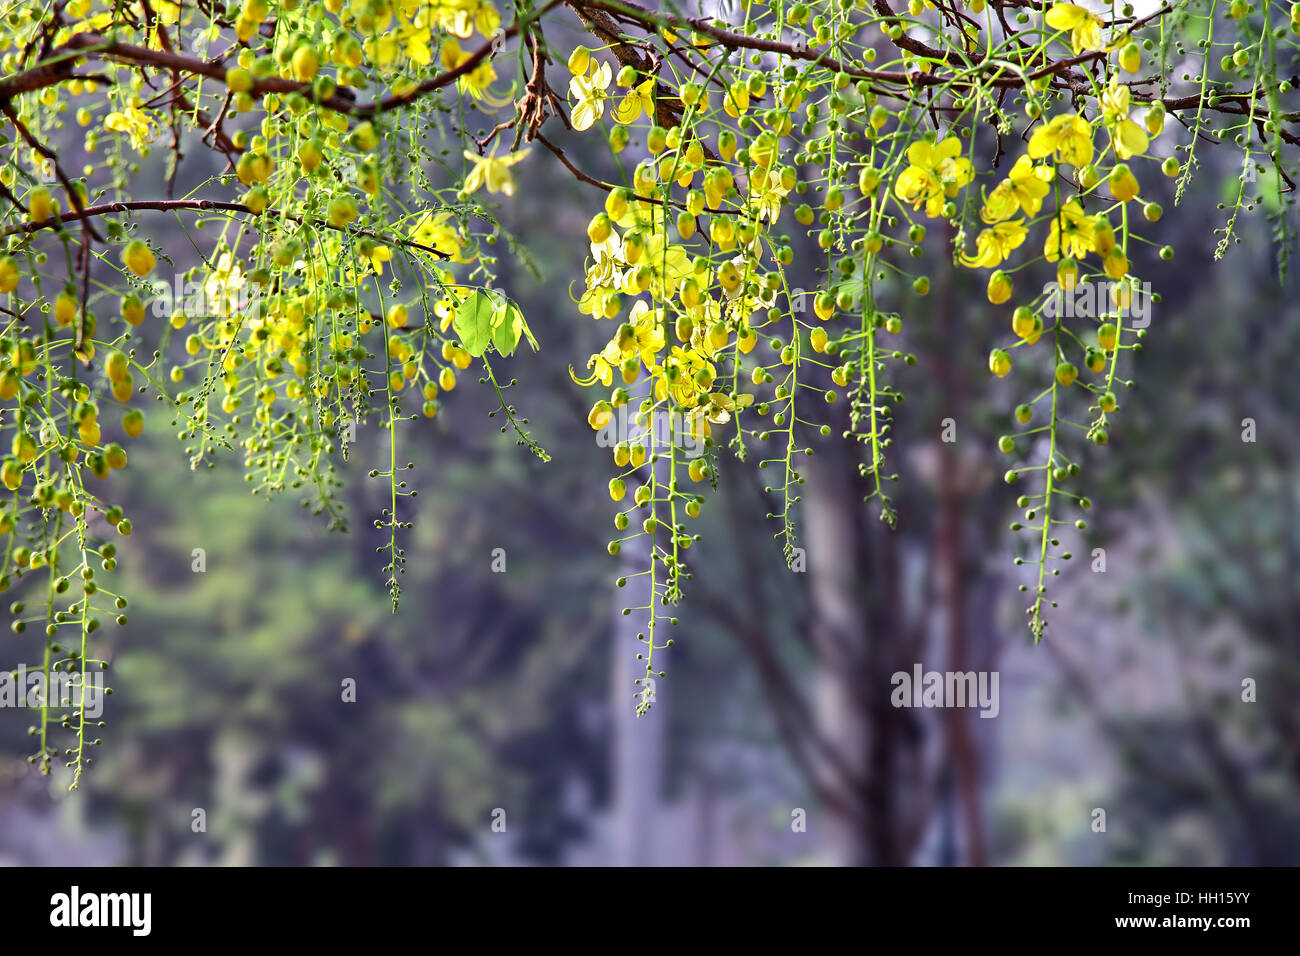 Thailand yellow flower tree stock photos thailand yellow flower golden shower cassia fistula bloom in tree called konna in kerala india mightylinksfo